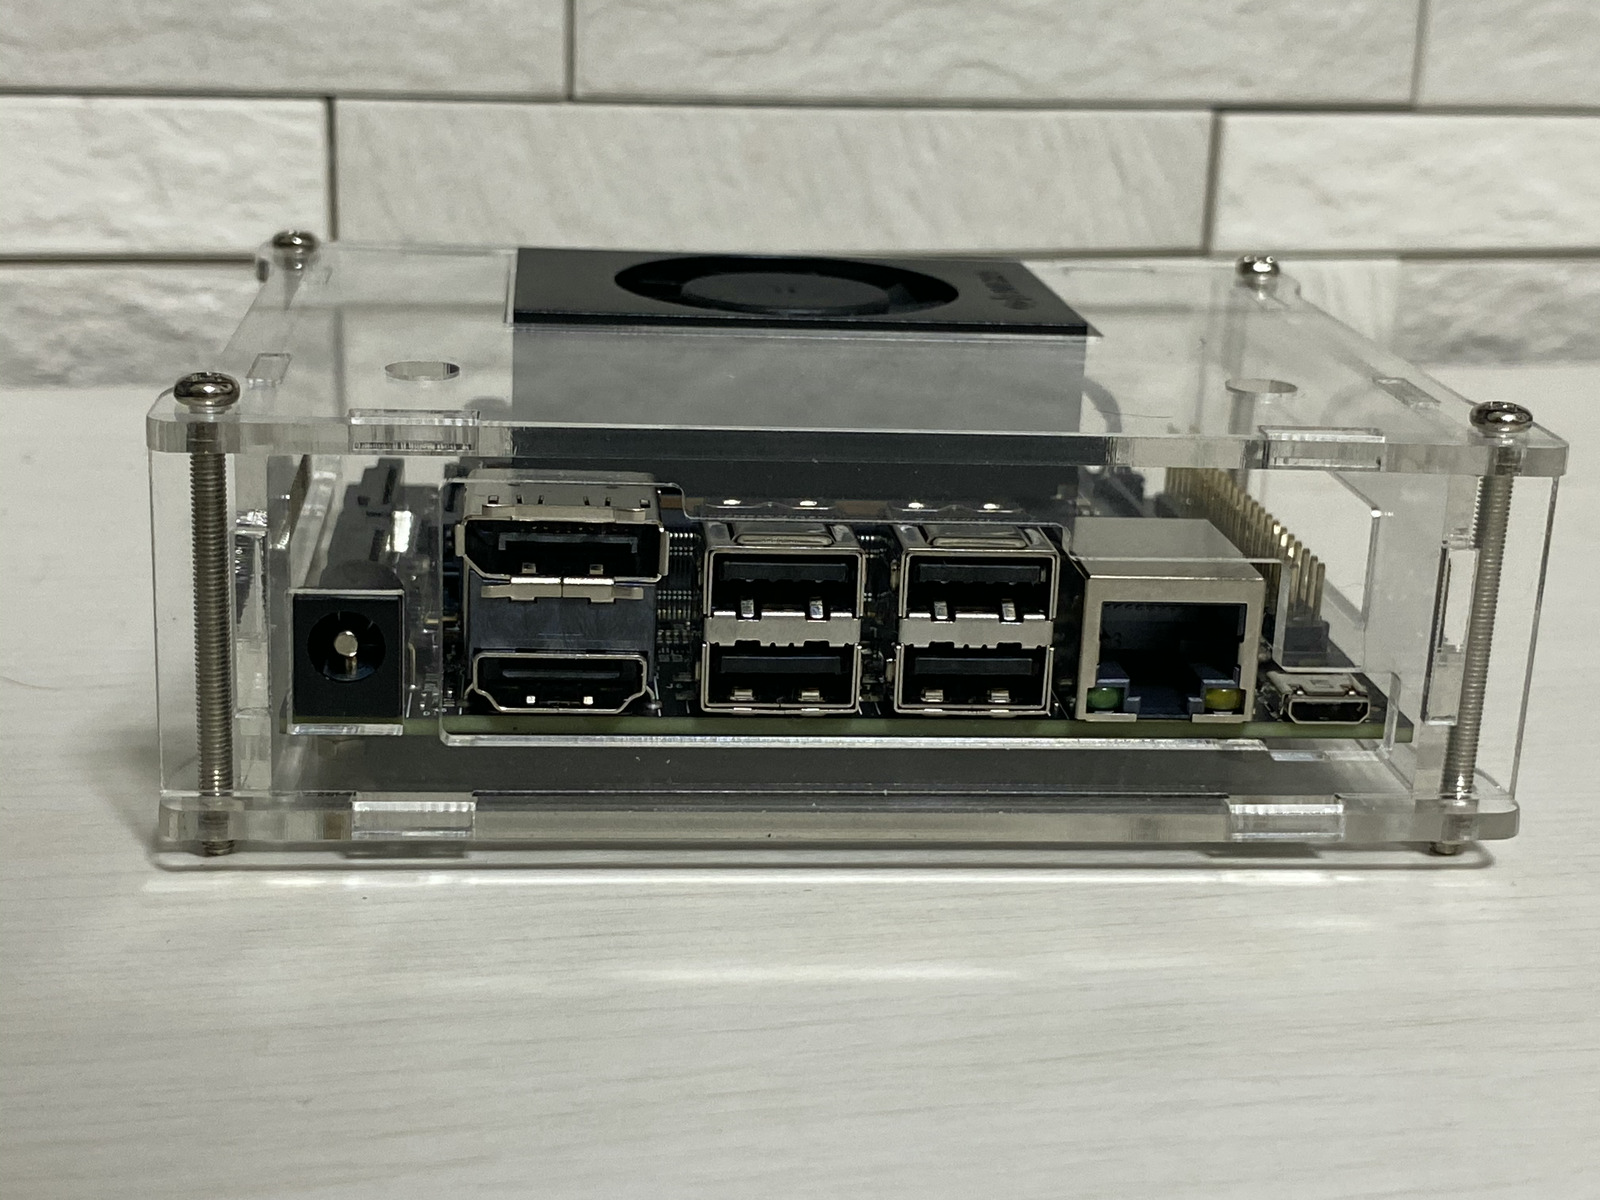 Acrylic Case I/O Port